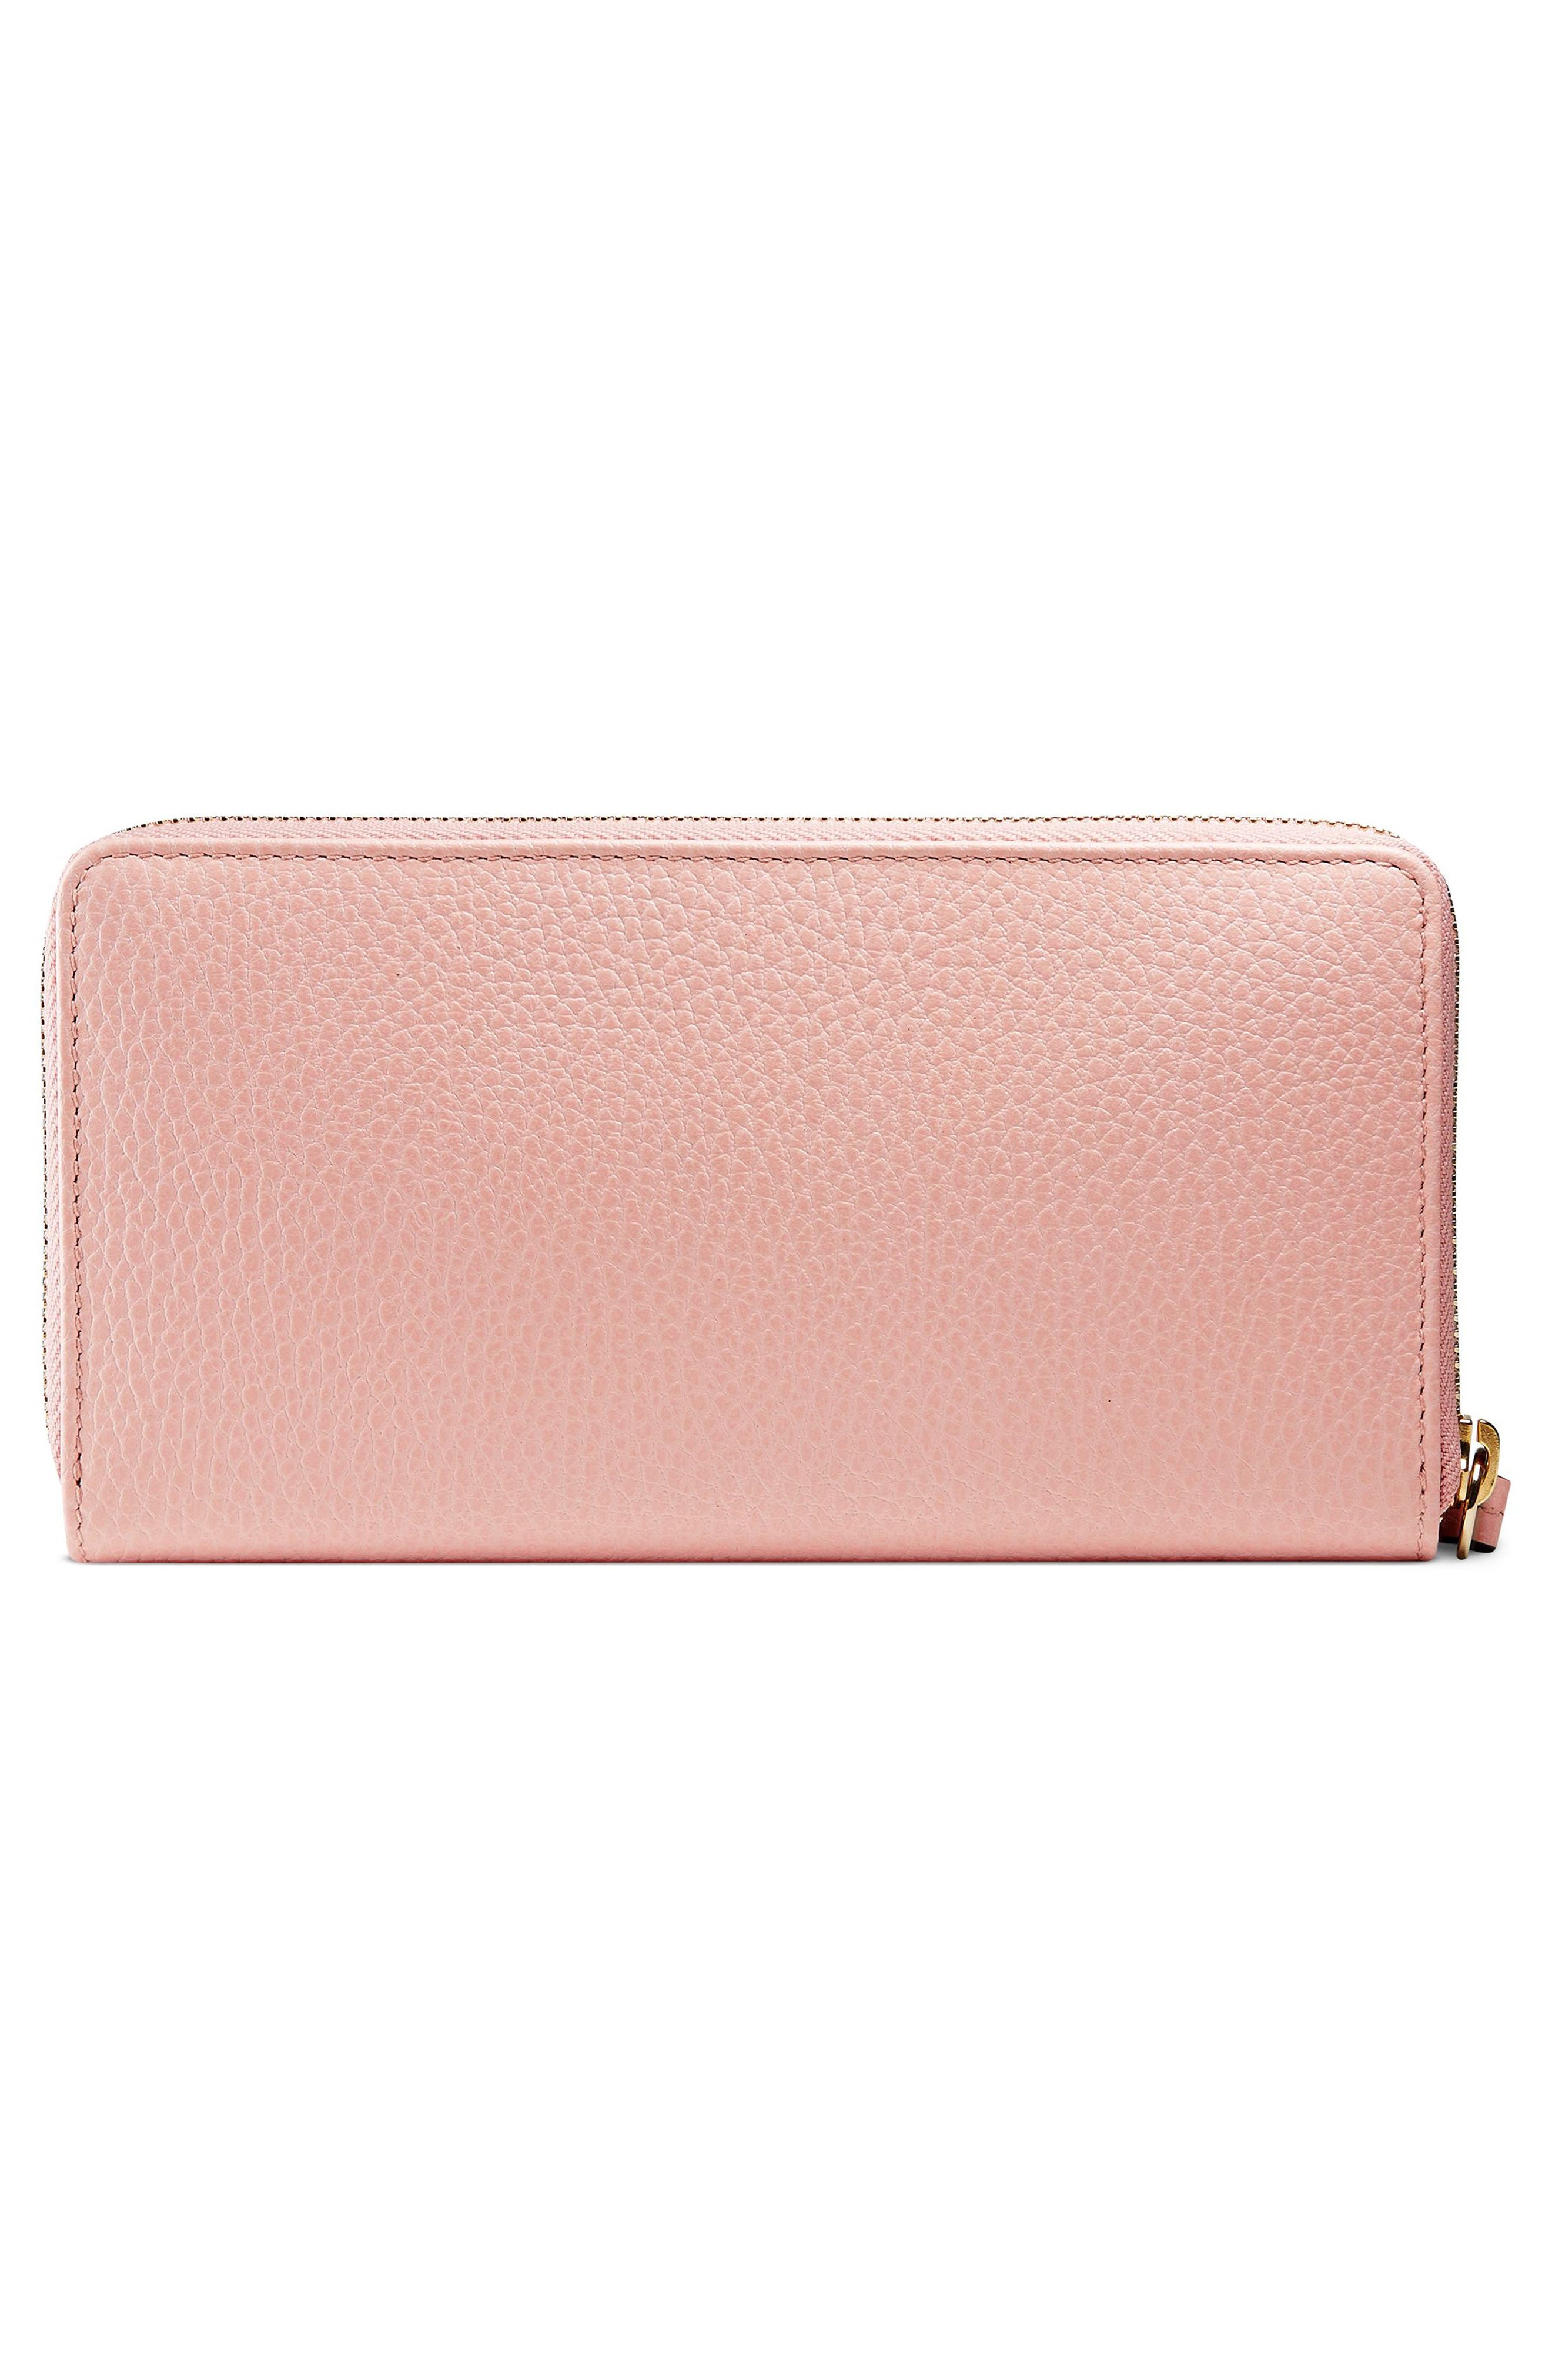 Petite Marmont Leather Zip Around Wallet,                             Alternate thumbnail 3, color,                             PERFECT PINK